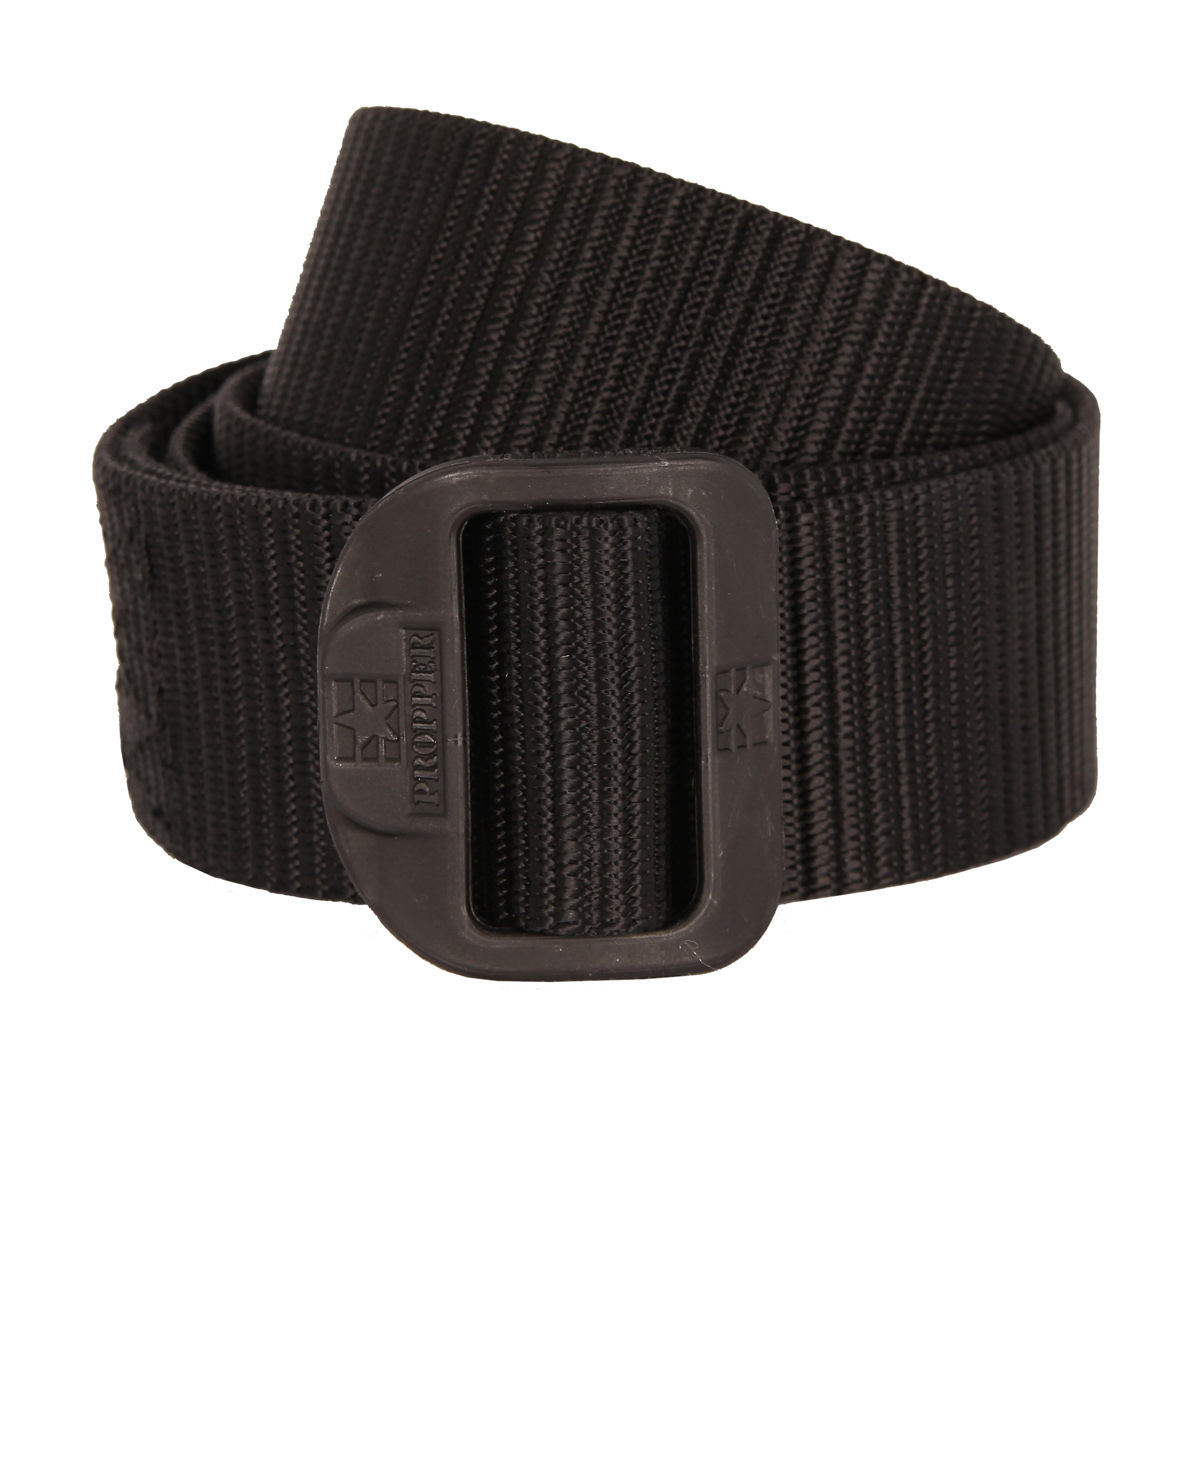 Propper Black Tactical Belts